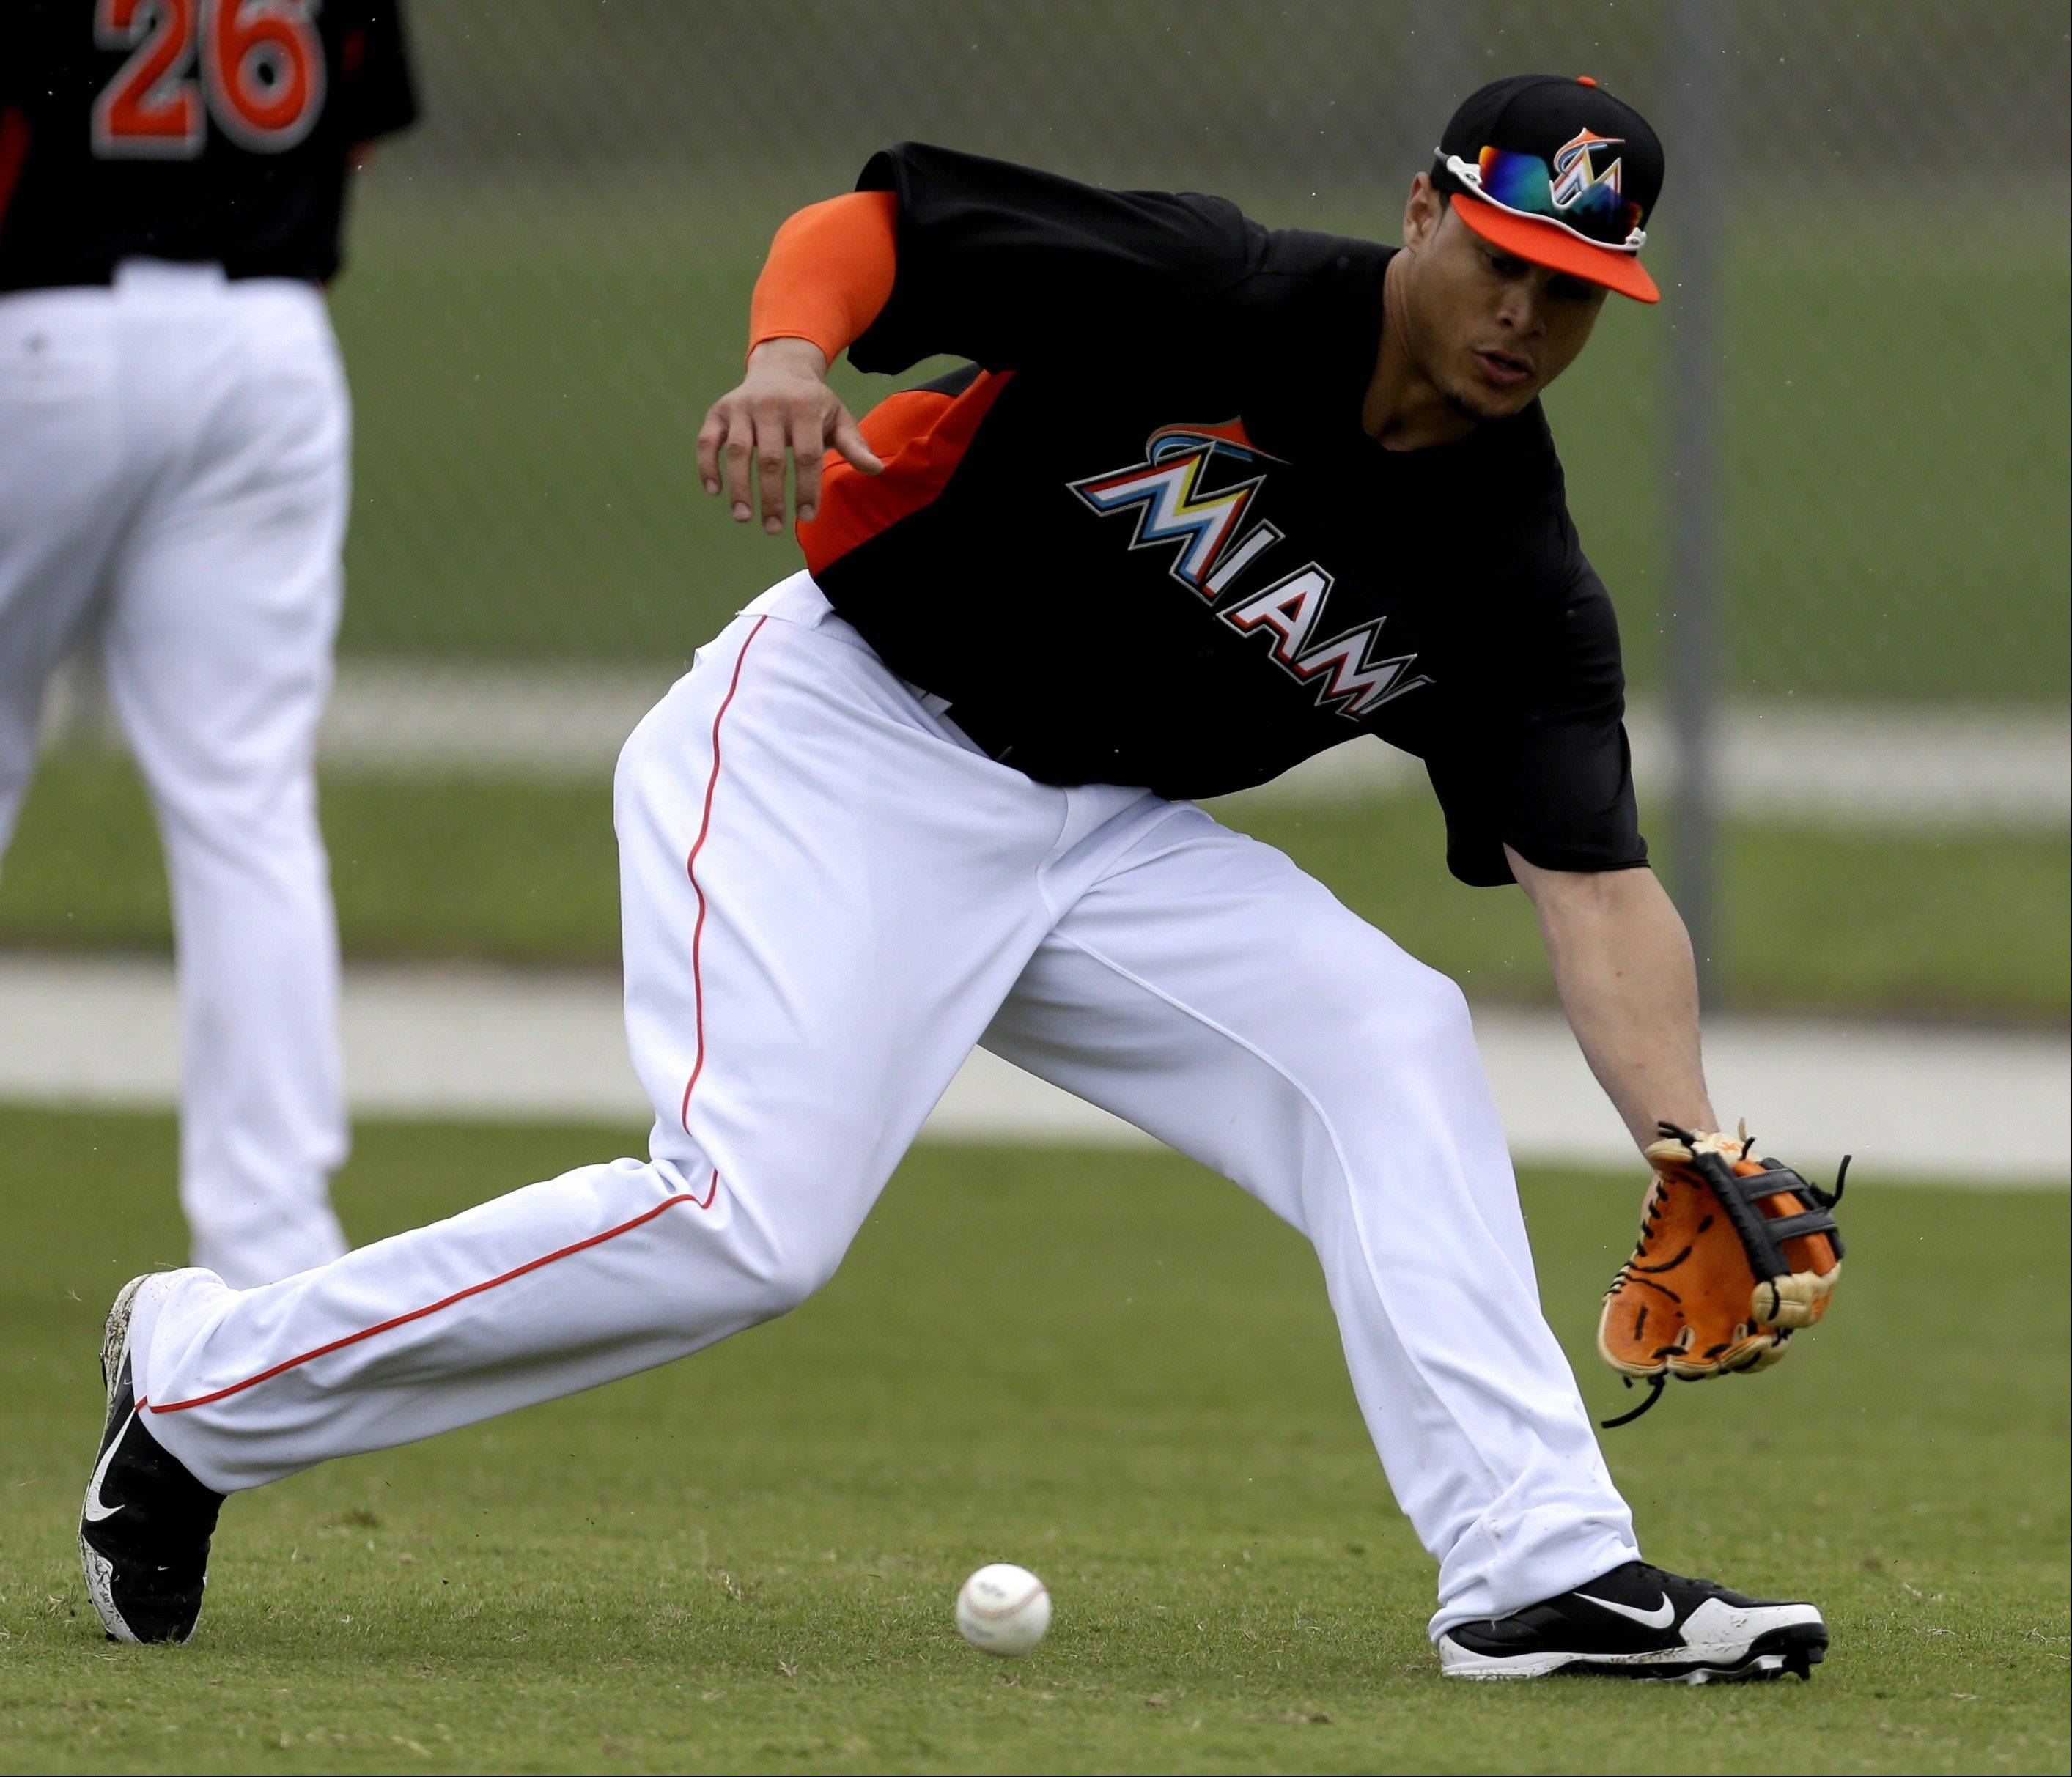 Miami Marlins right fielder Giancarlo Stanton fields a groundball in the outfield during a spring-training workout in Jupiter, Fla.